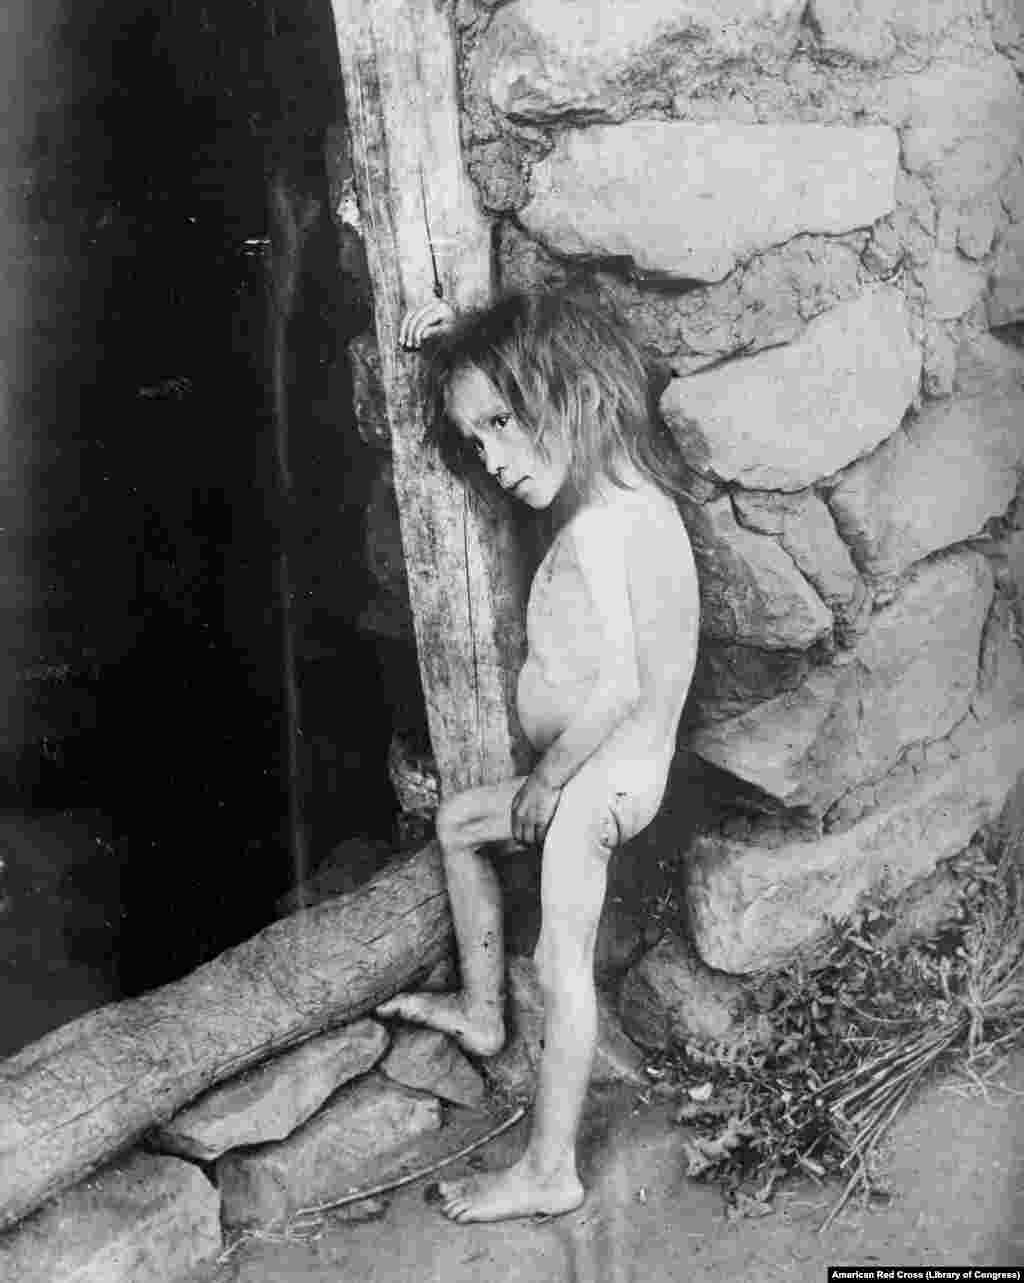 """A starving 7-year-old child in Russia's Samara region in 1921. By the time the war neared its end, Russia's economy had collapsed, crops had failed due to a drought, and the Bolsheviks' """"War Communism"""" that mandated the forcible seizure of grain from peasants left millions of Russians in a desperate situation."""